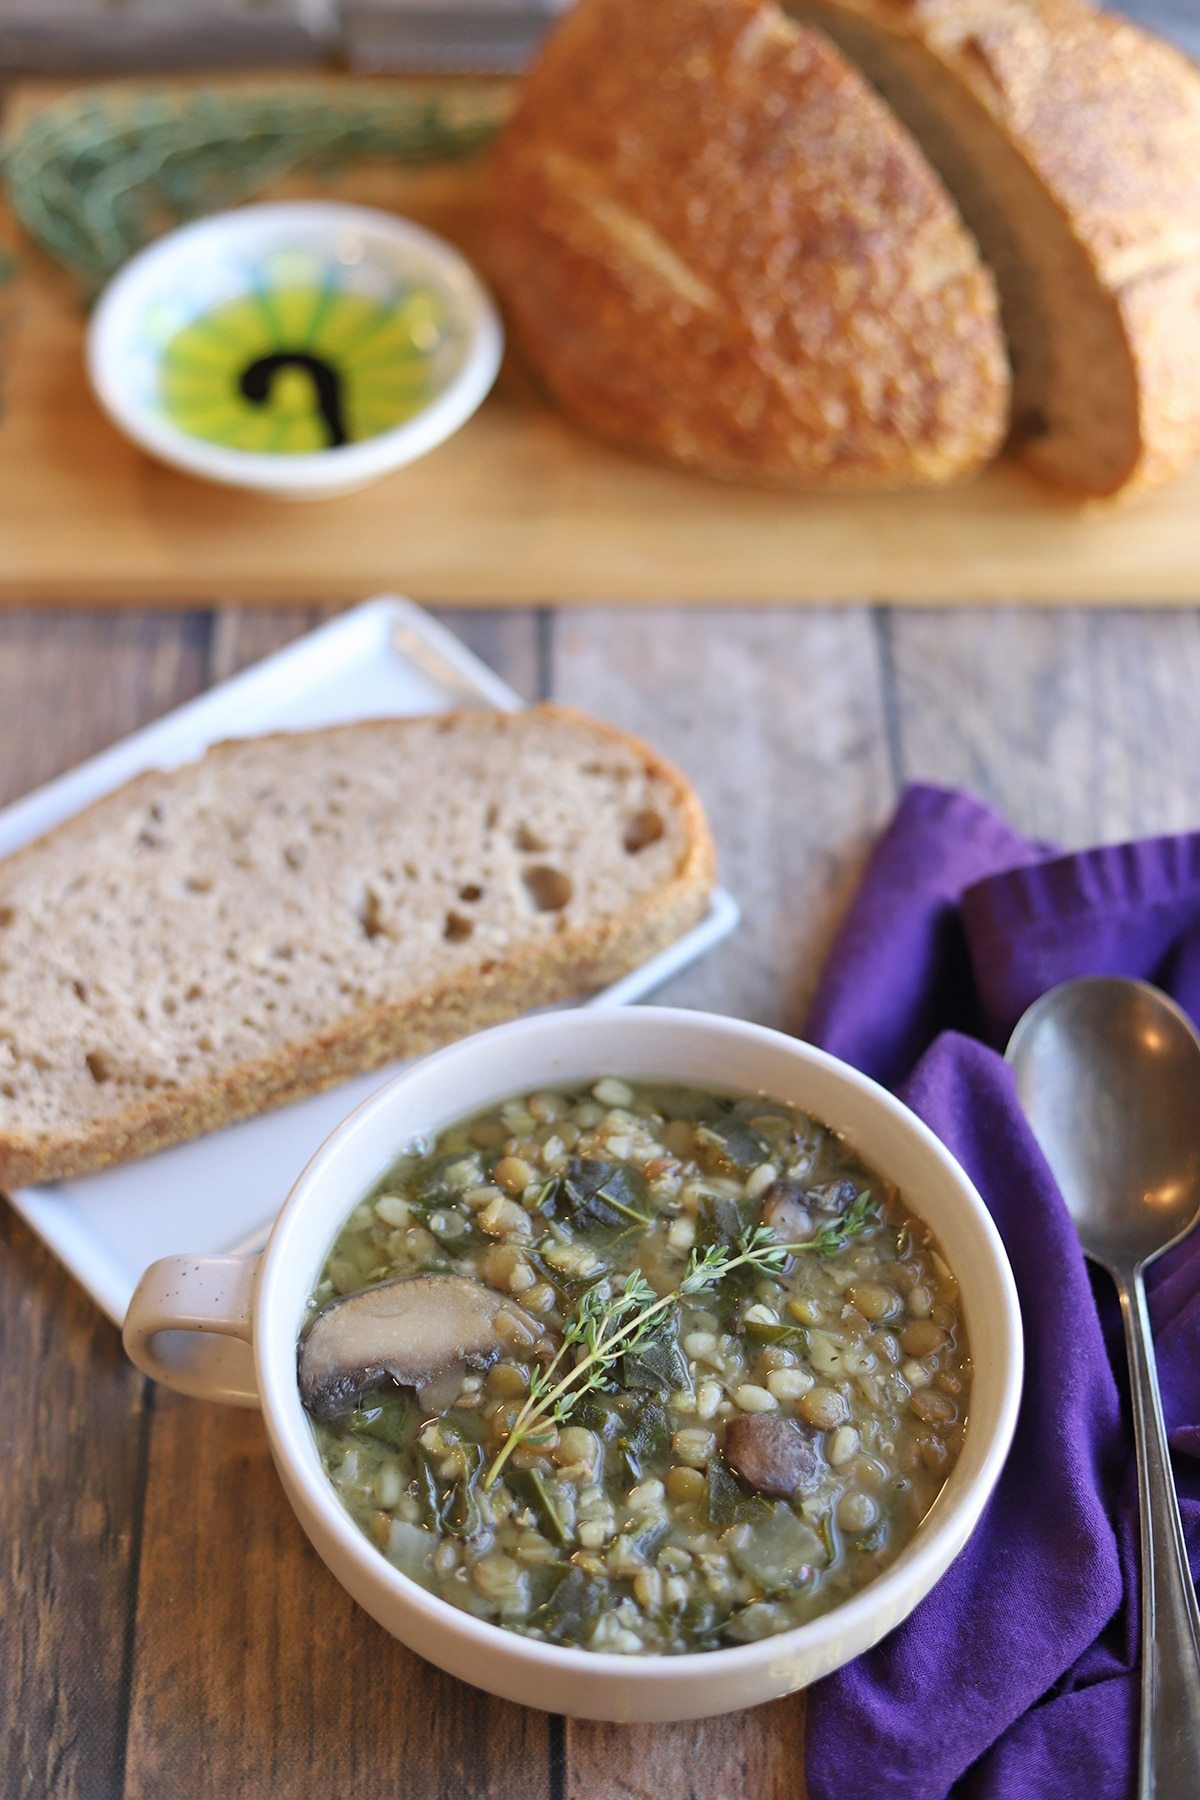 Lentil mushroom barley soup in bowl on table with bread and oil.